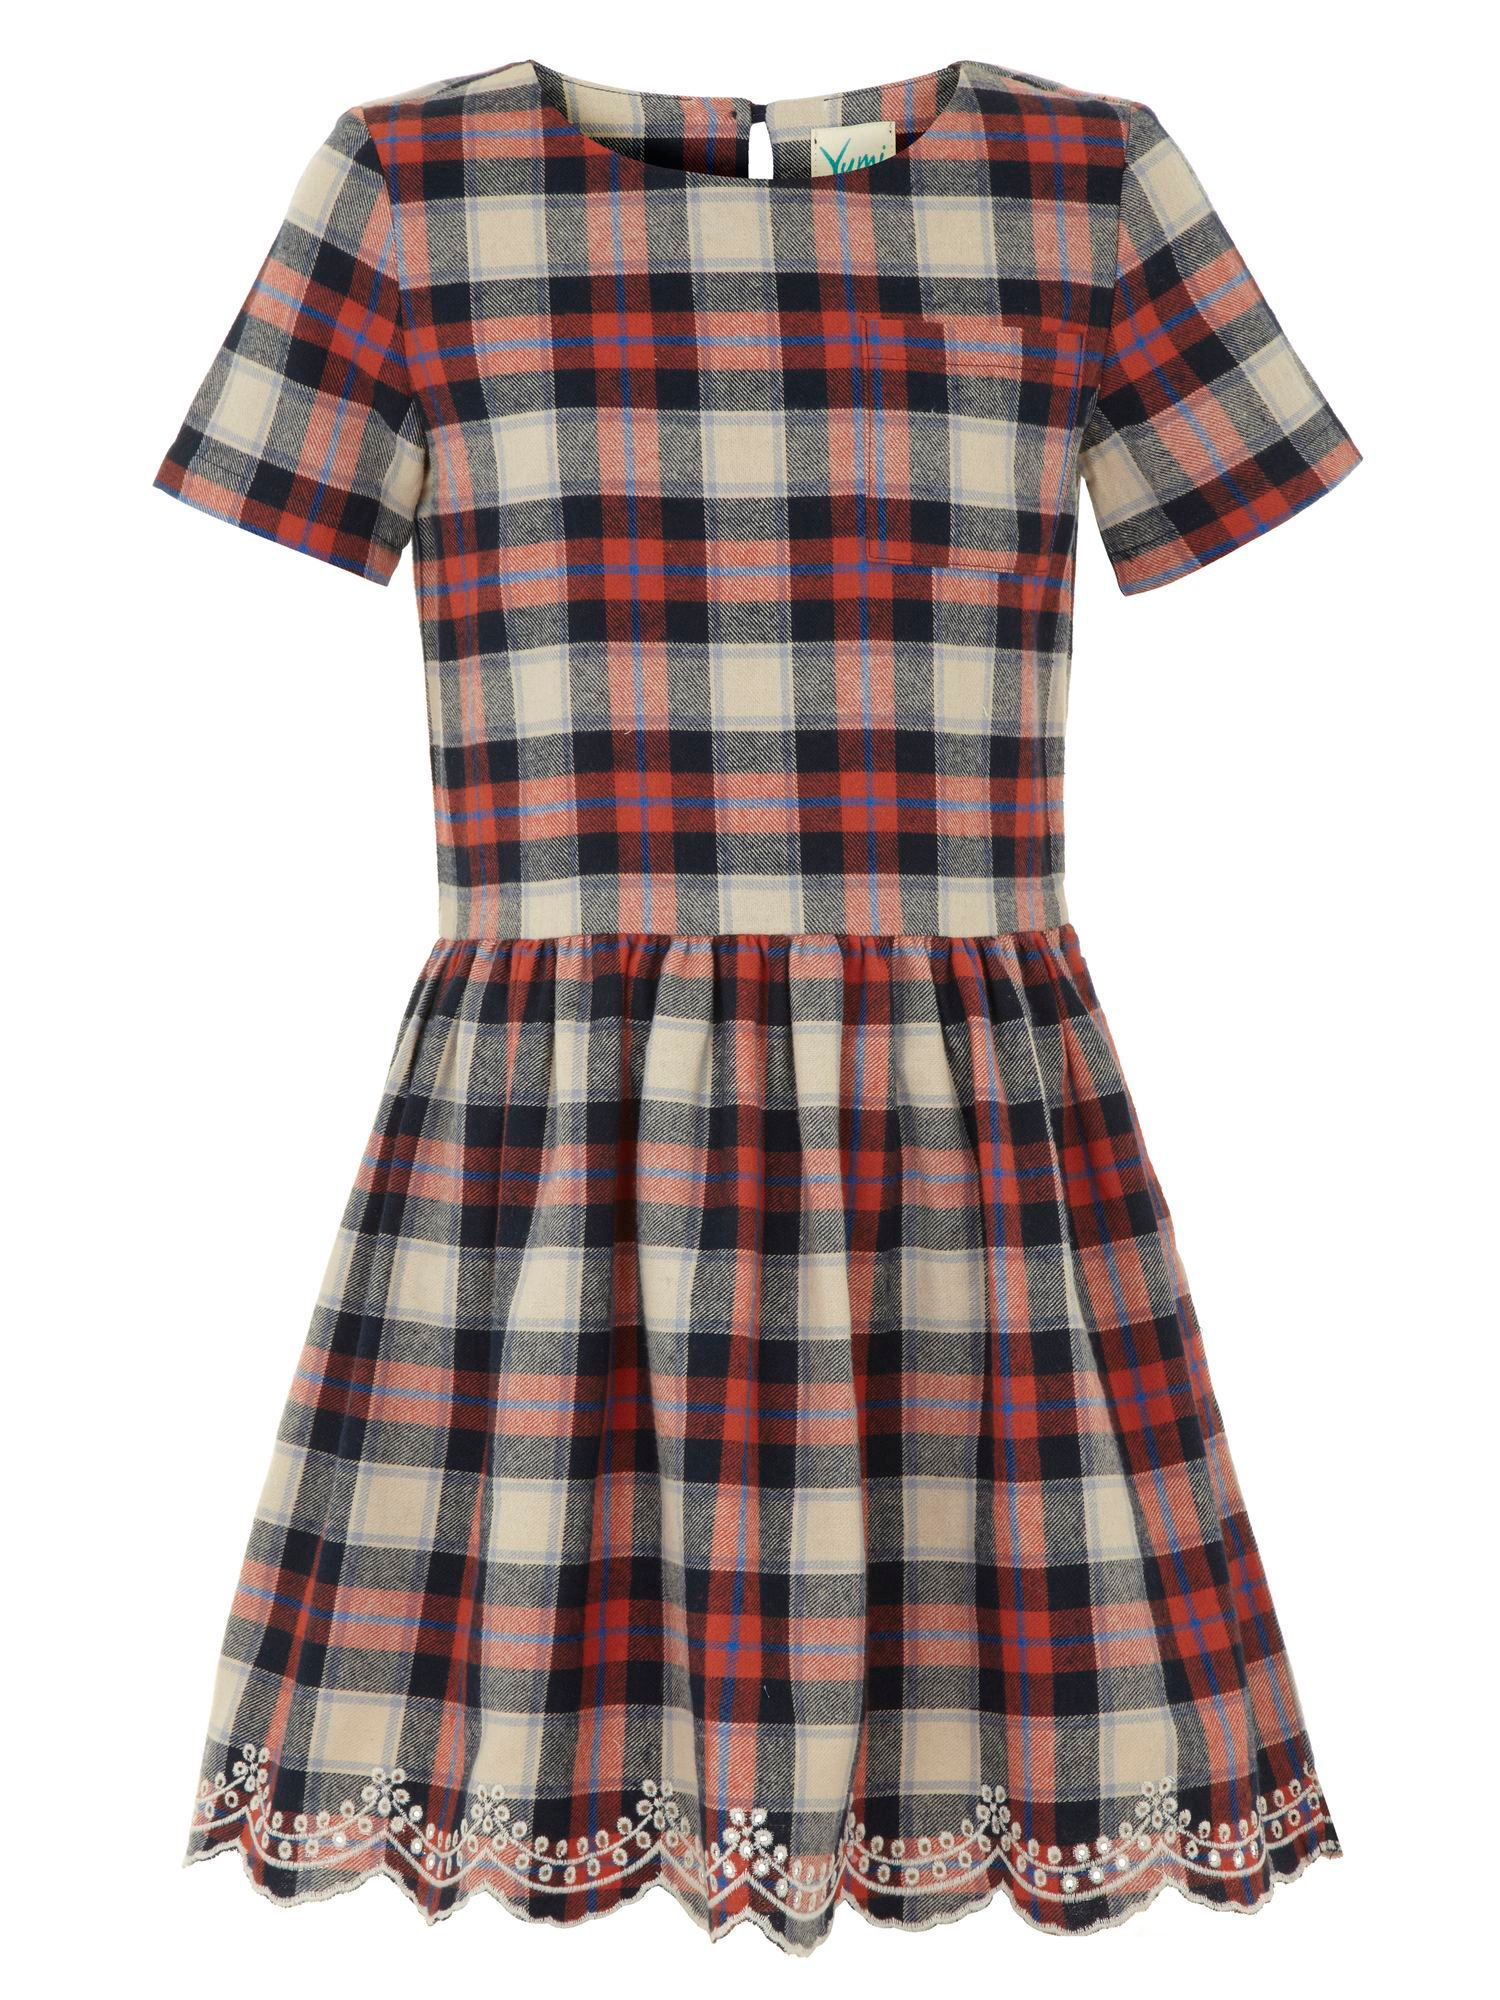 Girls checked dress